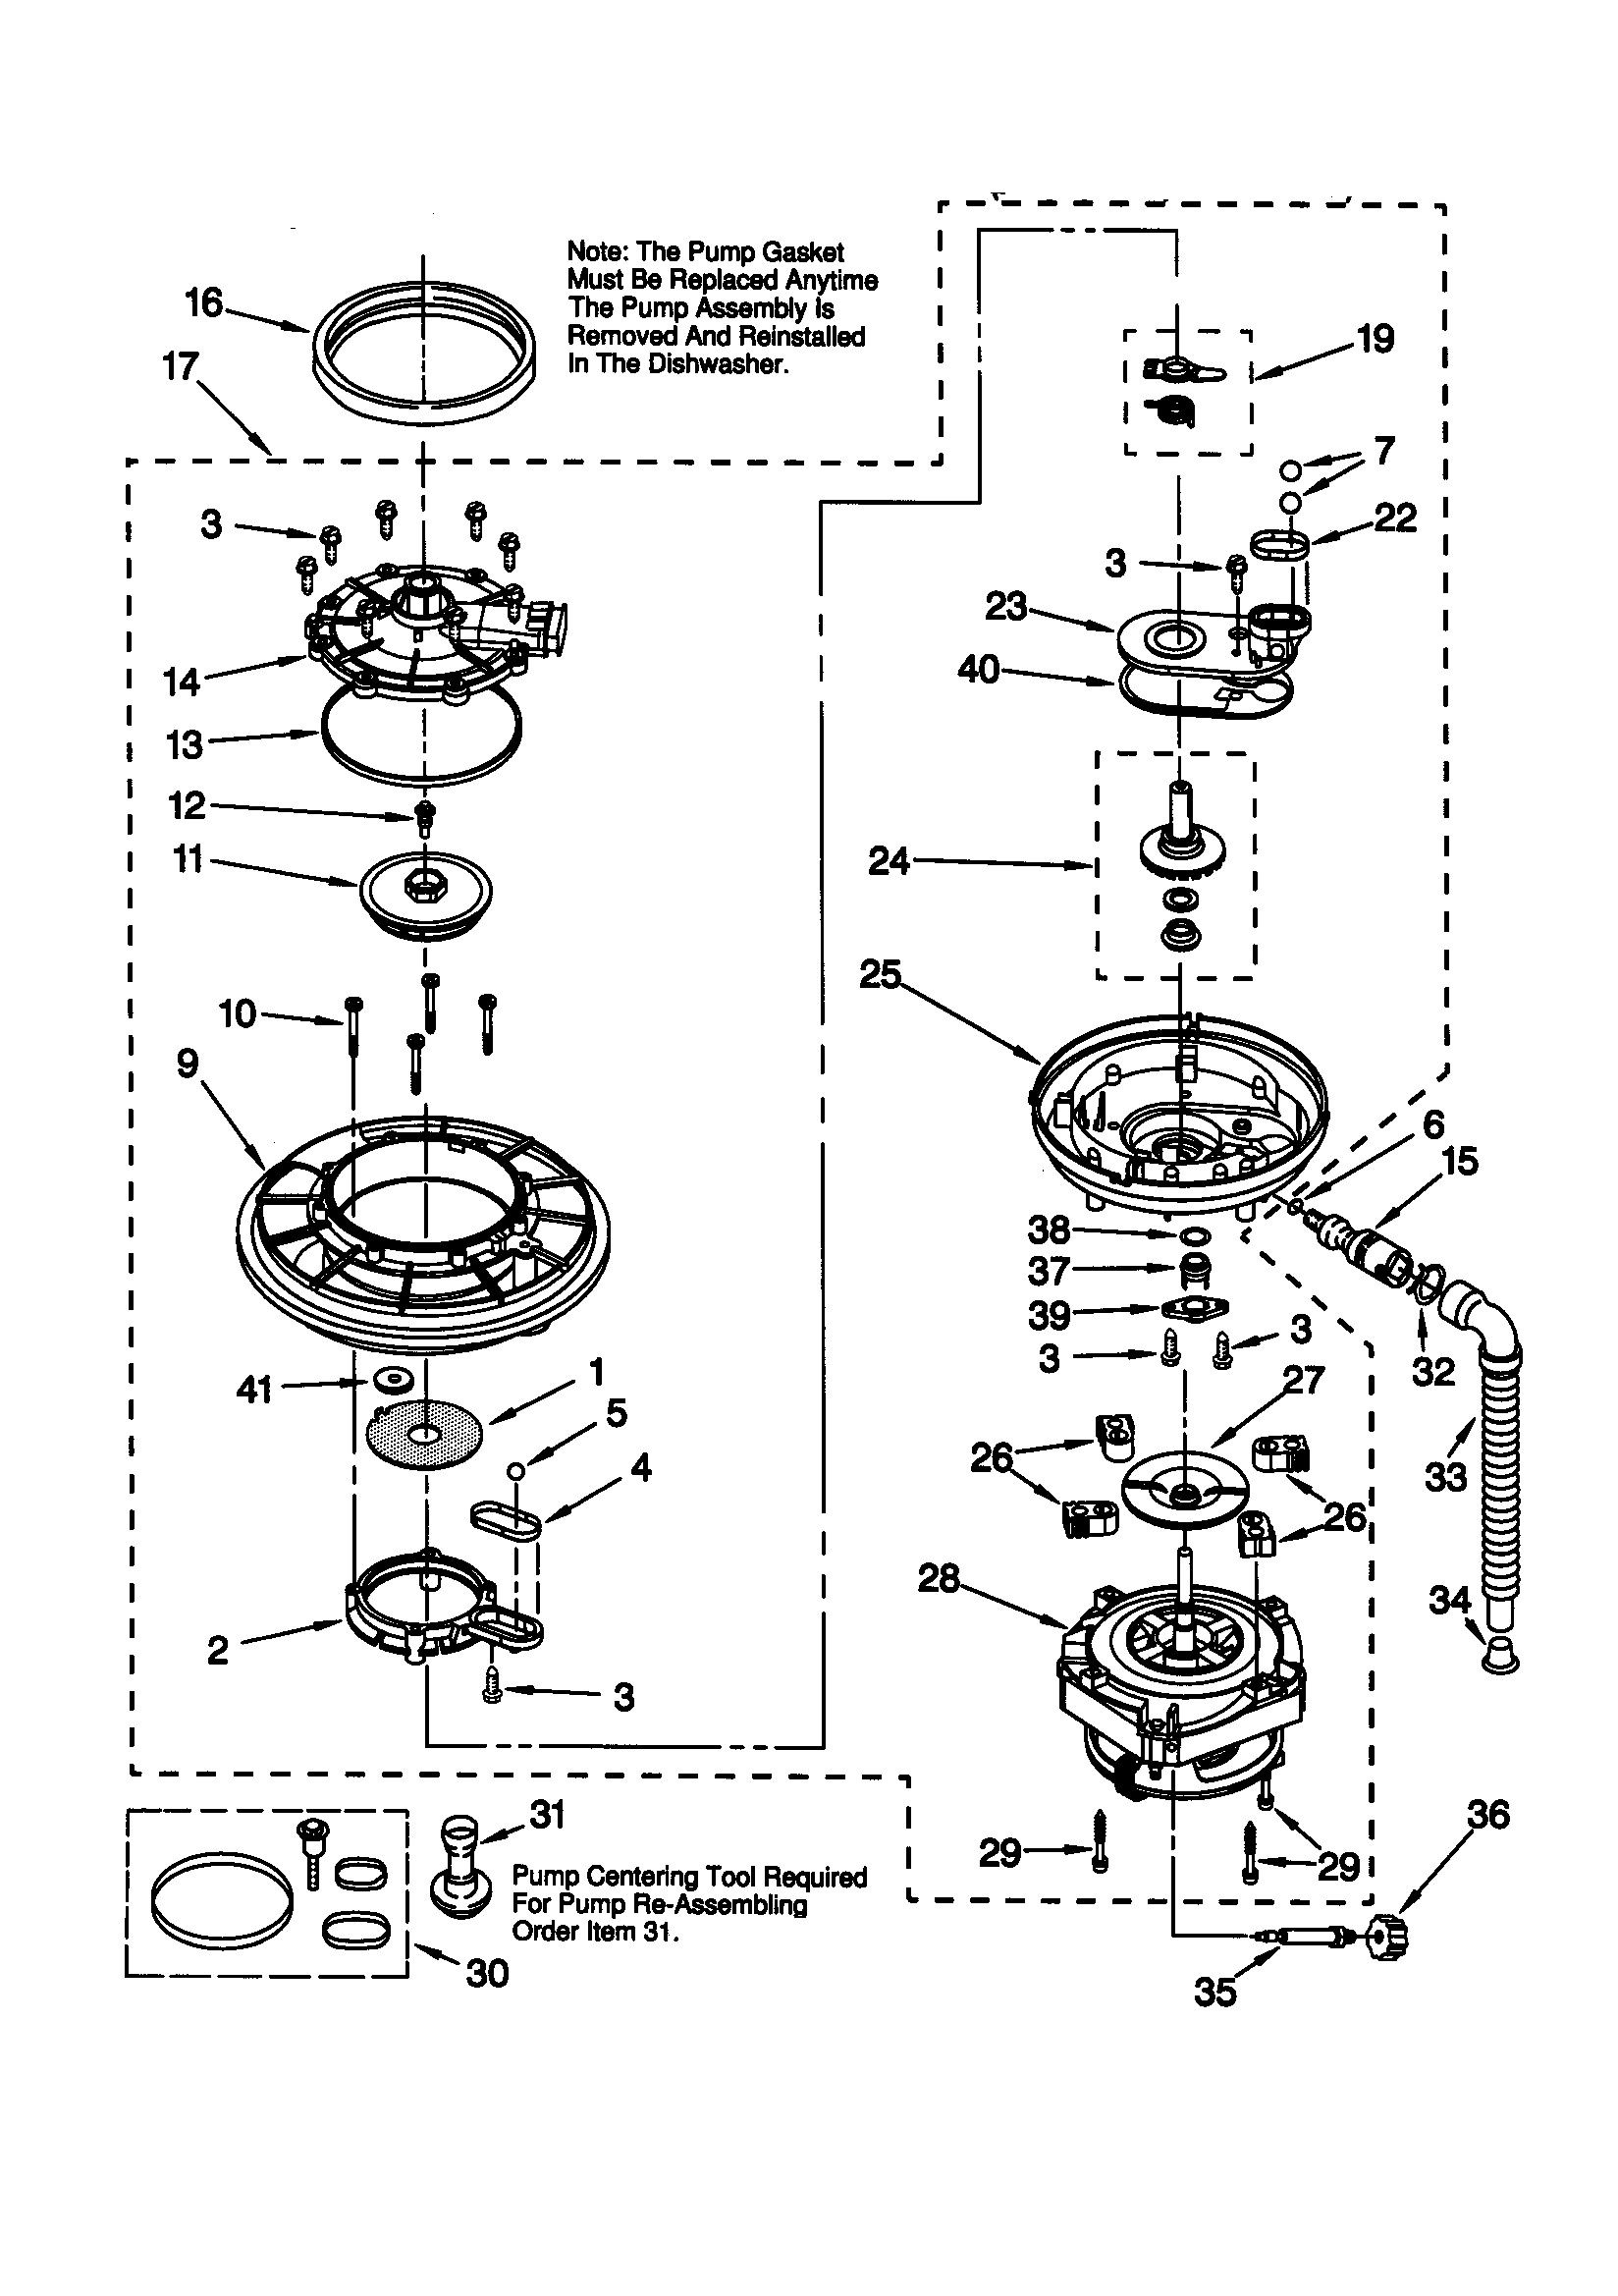 Kenmore 66515982990 Timer - Stove Clocks and Appliance Timers on kenmore washing machine clutch, washing machine parts diagram, kenmore washing machine exploded view, estate washing machine wiring diagram, whirlpool stove wiring diagram, washing machine motor wiring diagram, samsung washing machine wiring diagram, kenmore washing machine repair, kenmore washing machine parts, admiral washing machine wiring diagram, kenmore washing machine installation, bosch washing machine wiring diagram, kitchenaid washing machine wiring diagram, kenmore washing machine motor, maytag washing machine wiring diagram, kenmore washing machine timer, kenmore electric dryer diagram, ge washing machine diagram, kenmore washing machine user manual, kenmore washing machine brake,